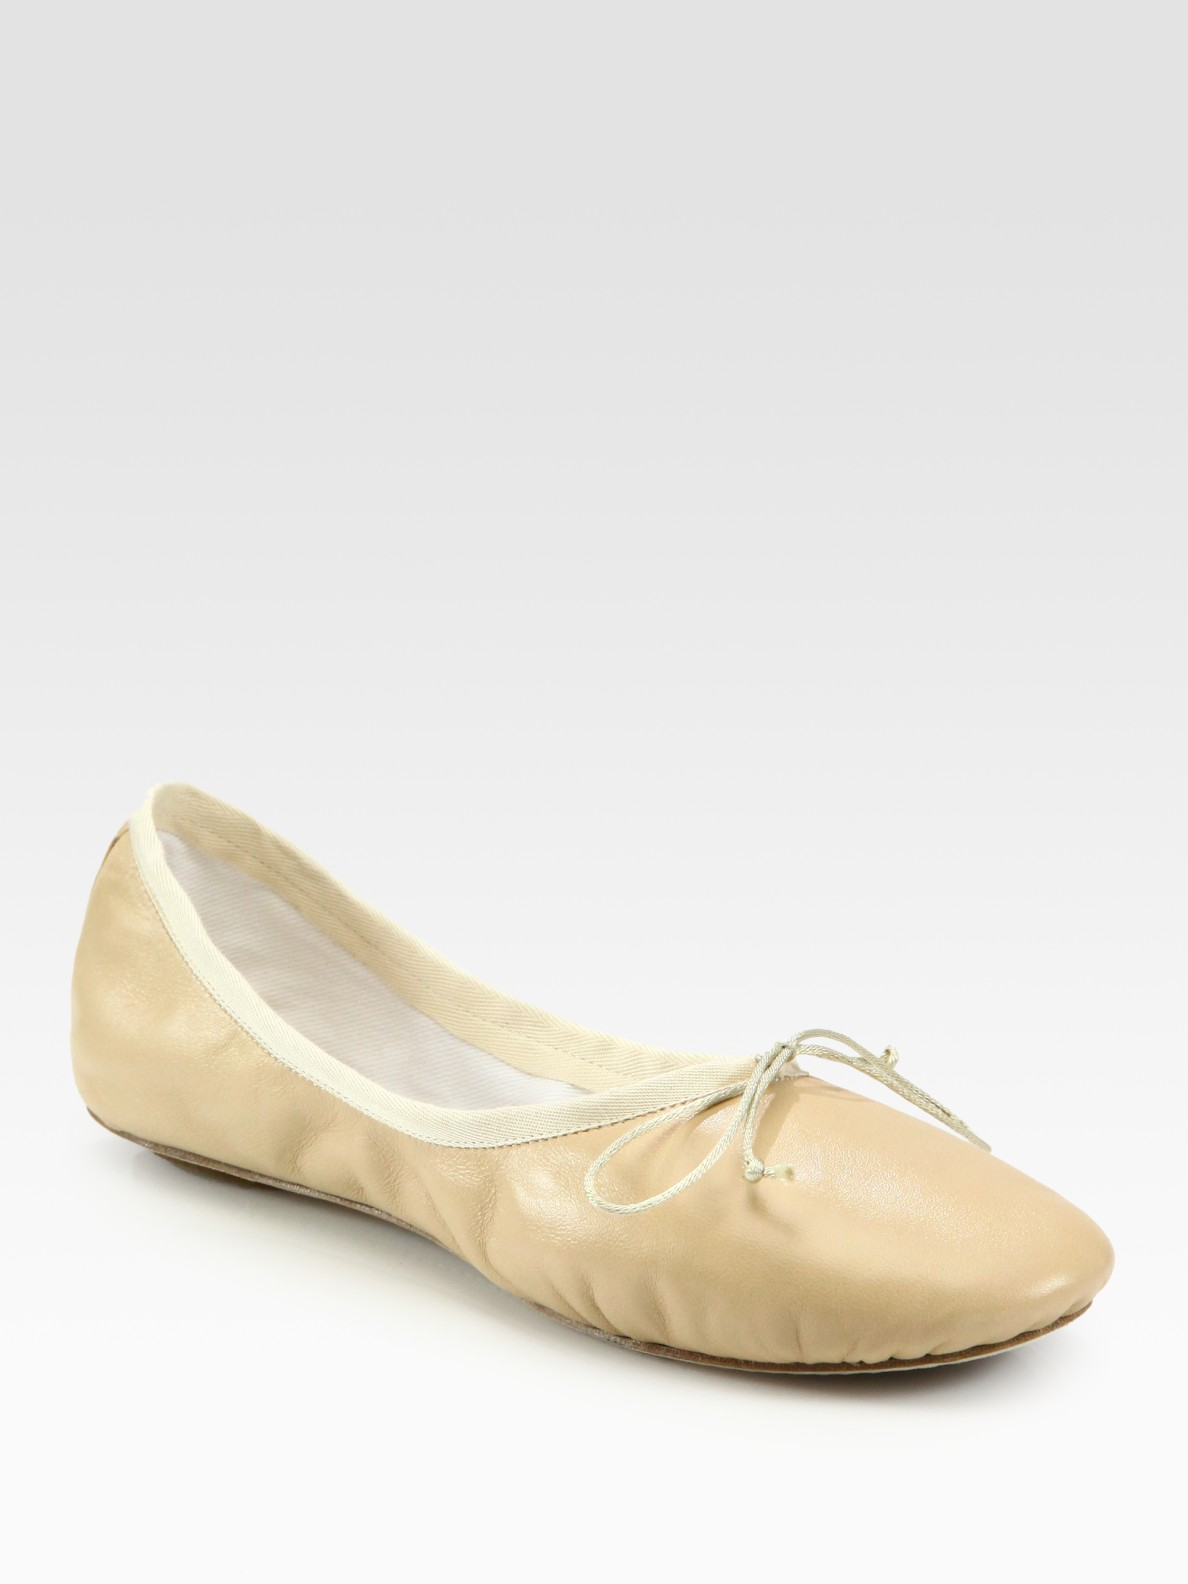 Chlo 233 Leather Ballet Flats In Pink Flesh Lyst